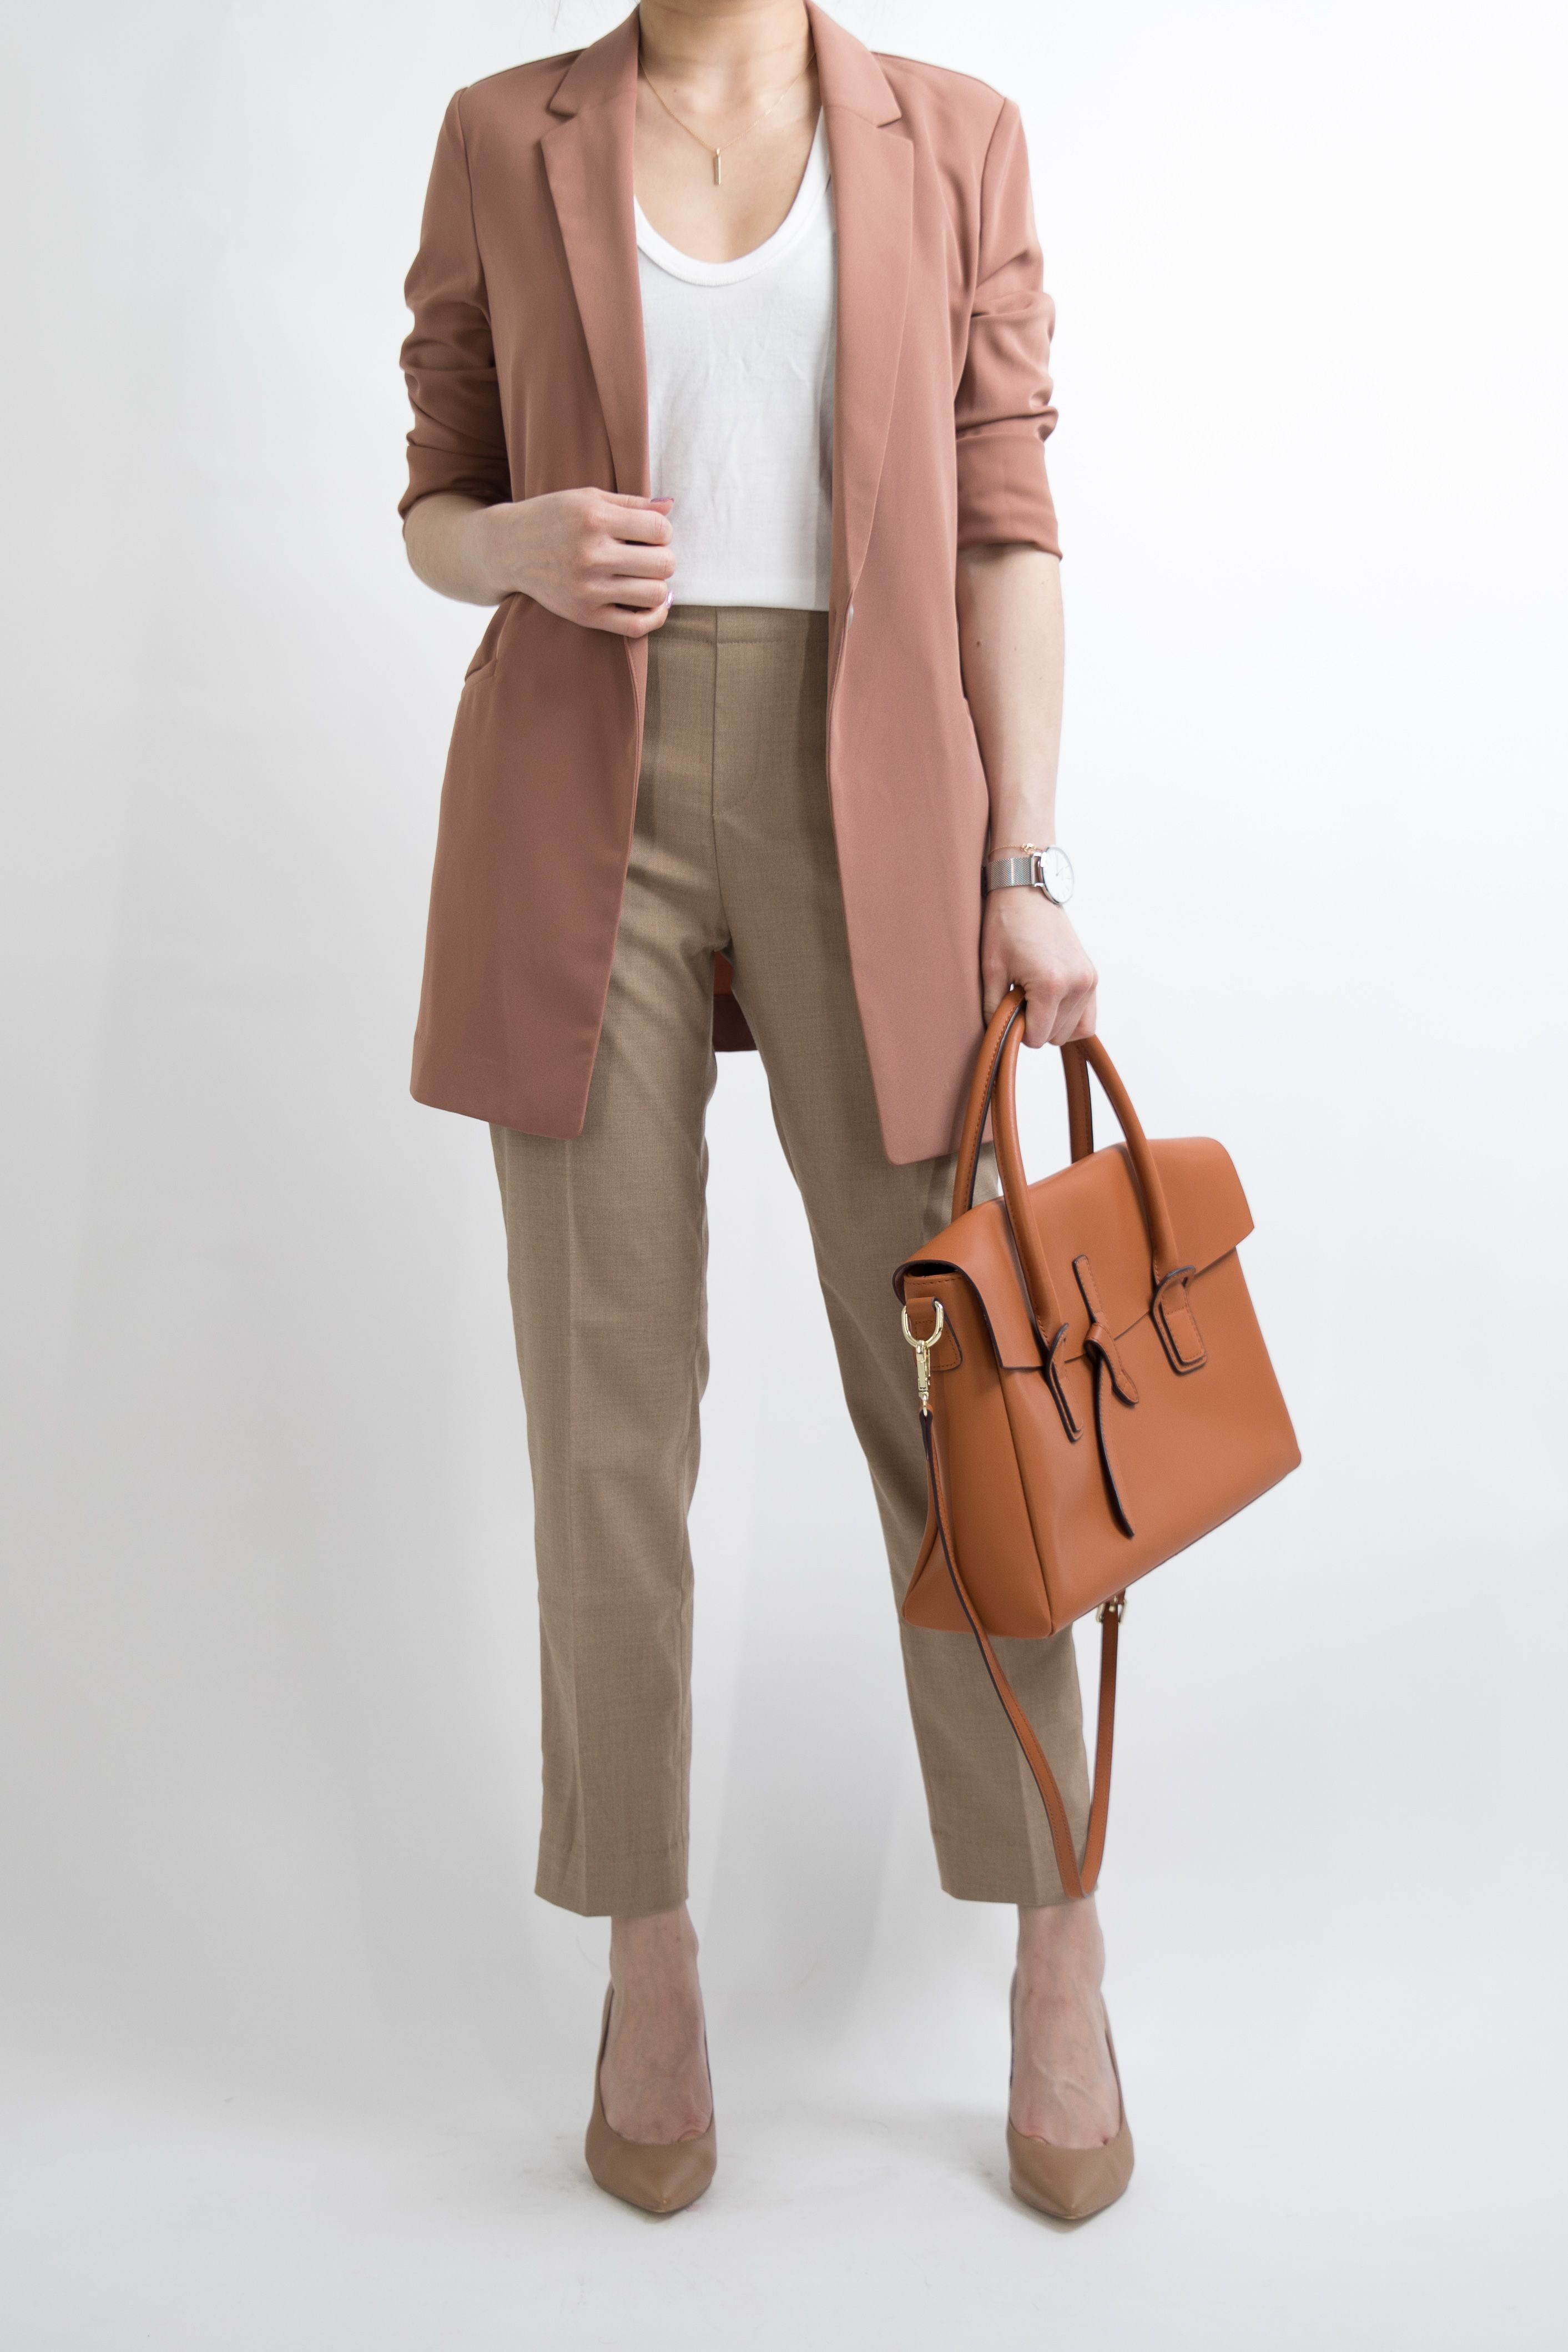 2ac774d751 business-casual-women-work-office-professional-outfit-ideas-miss-louie-36   casualworkoutfit